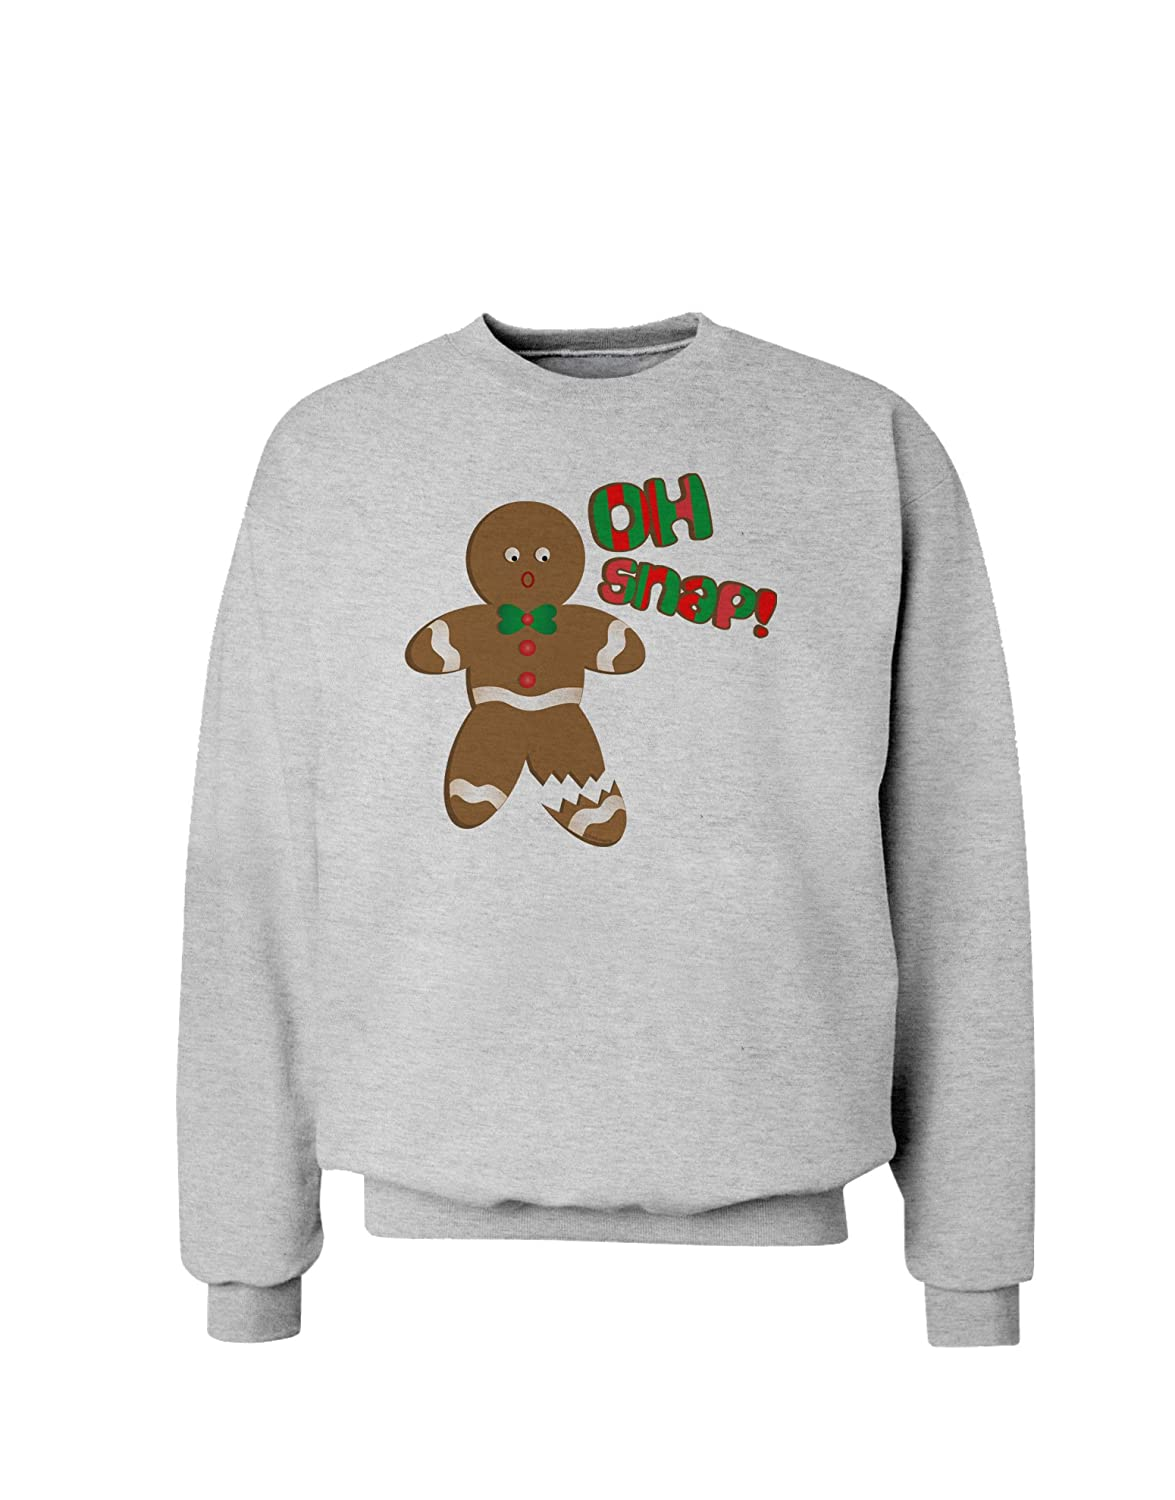 Amazon.com: Oh Snap Gingerbread Man Christmas Sweatshirt: Clothing